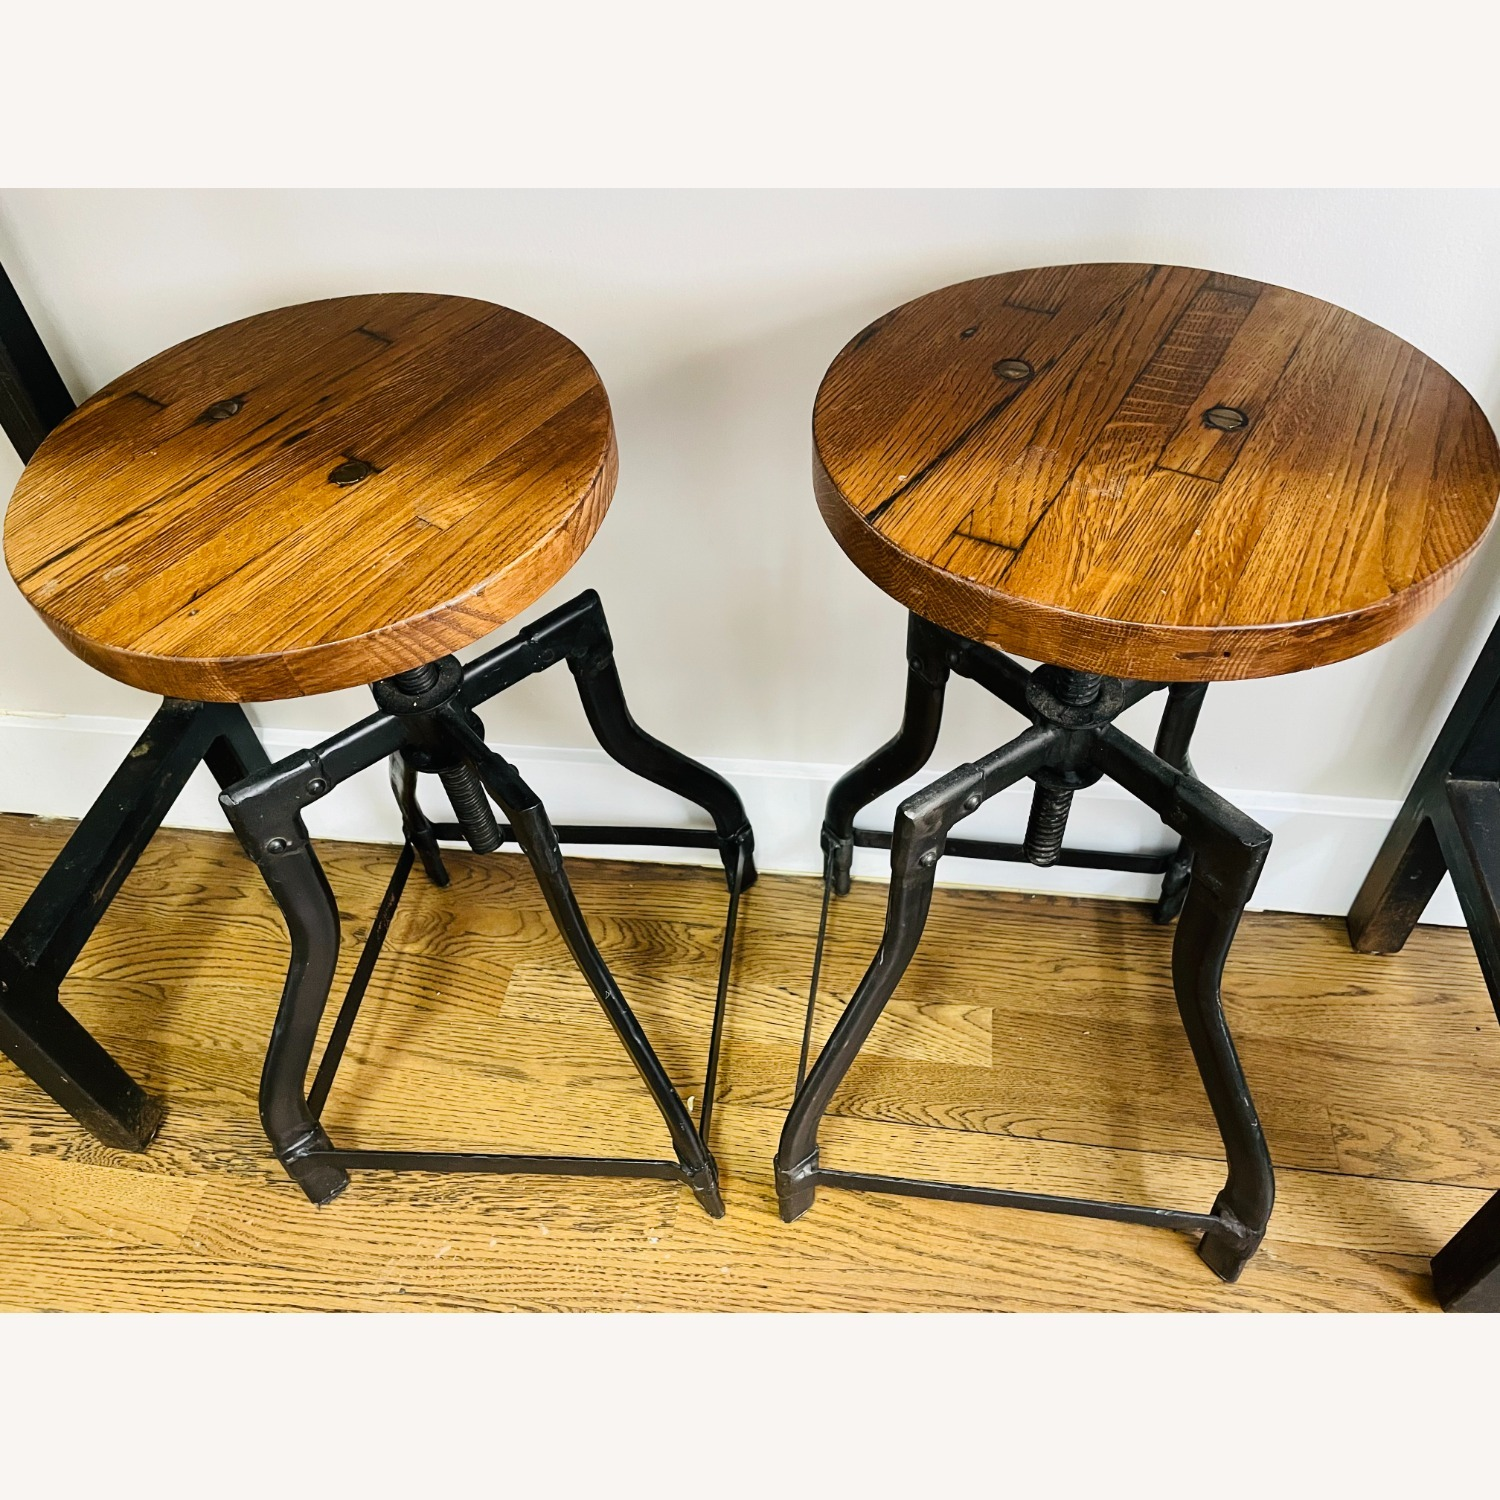 Console Table with Matching Stools - image-3